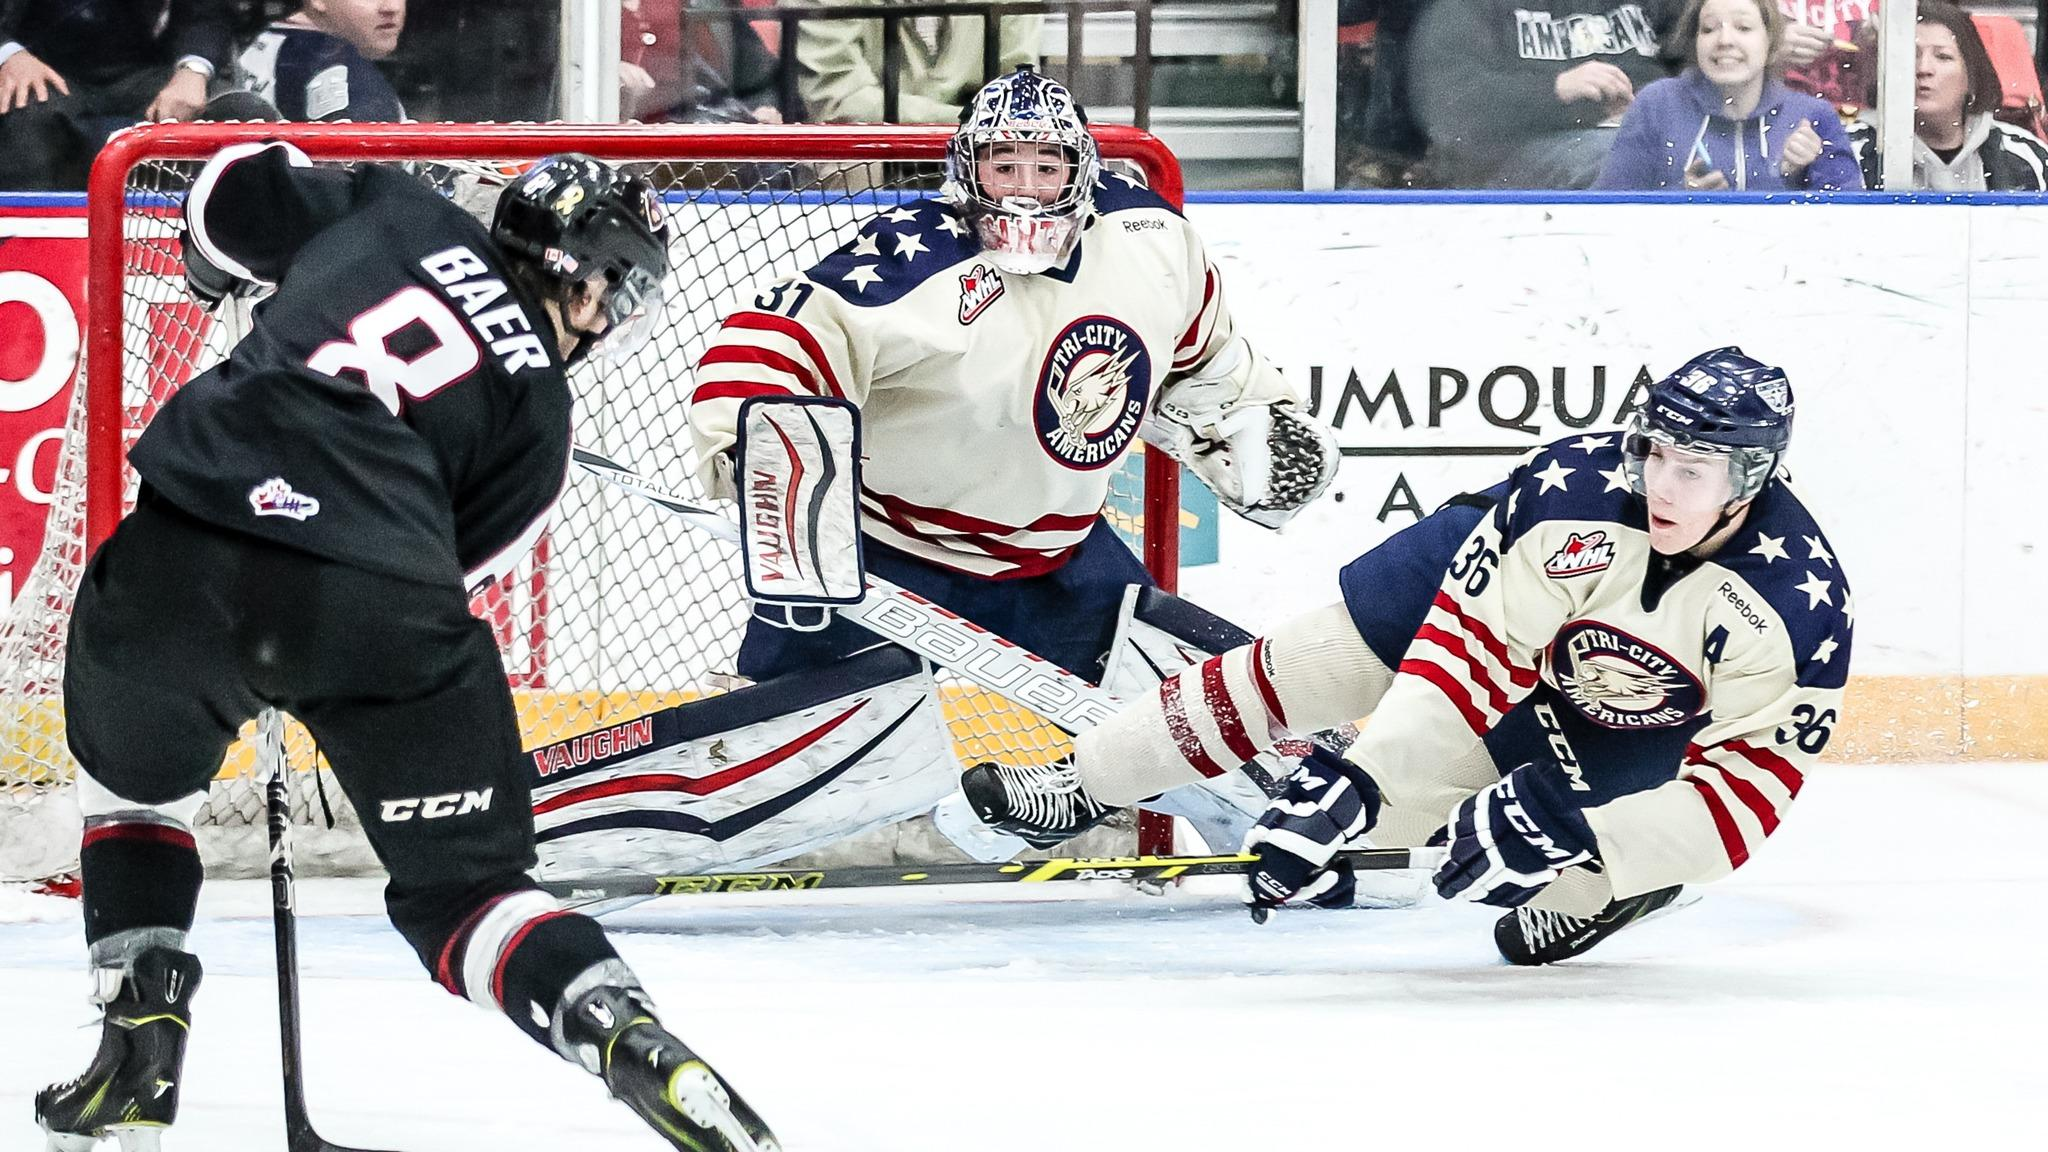 Tri-City Americans vs. Seattle Thunderbirds - Kennewick, WA 99336